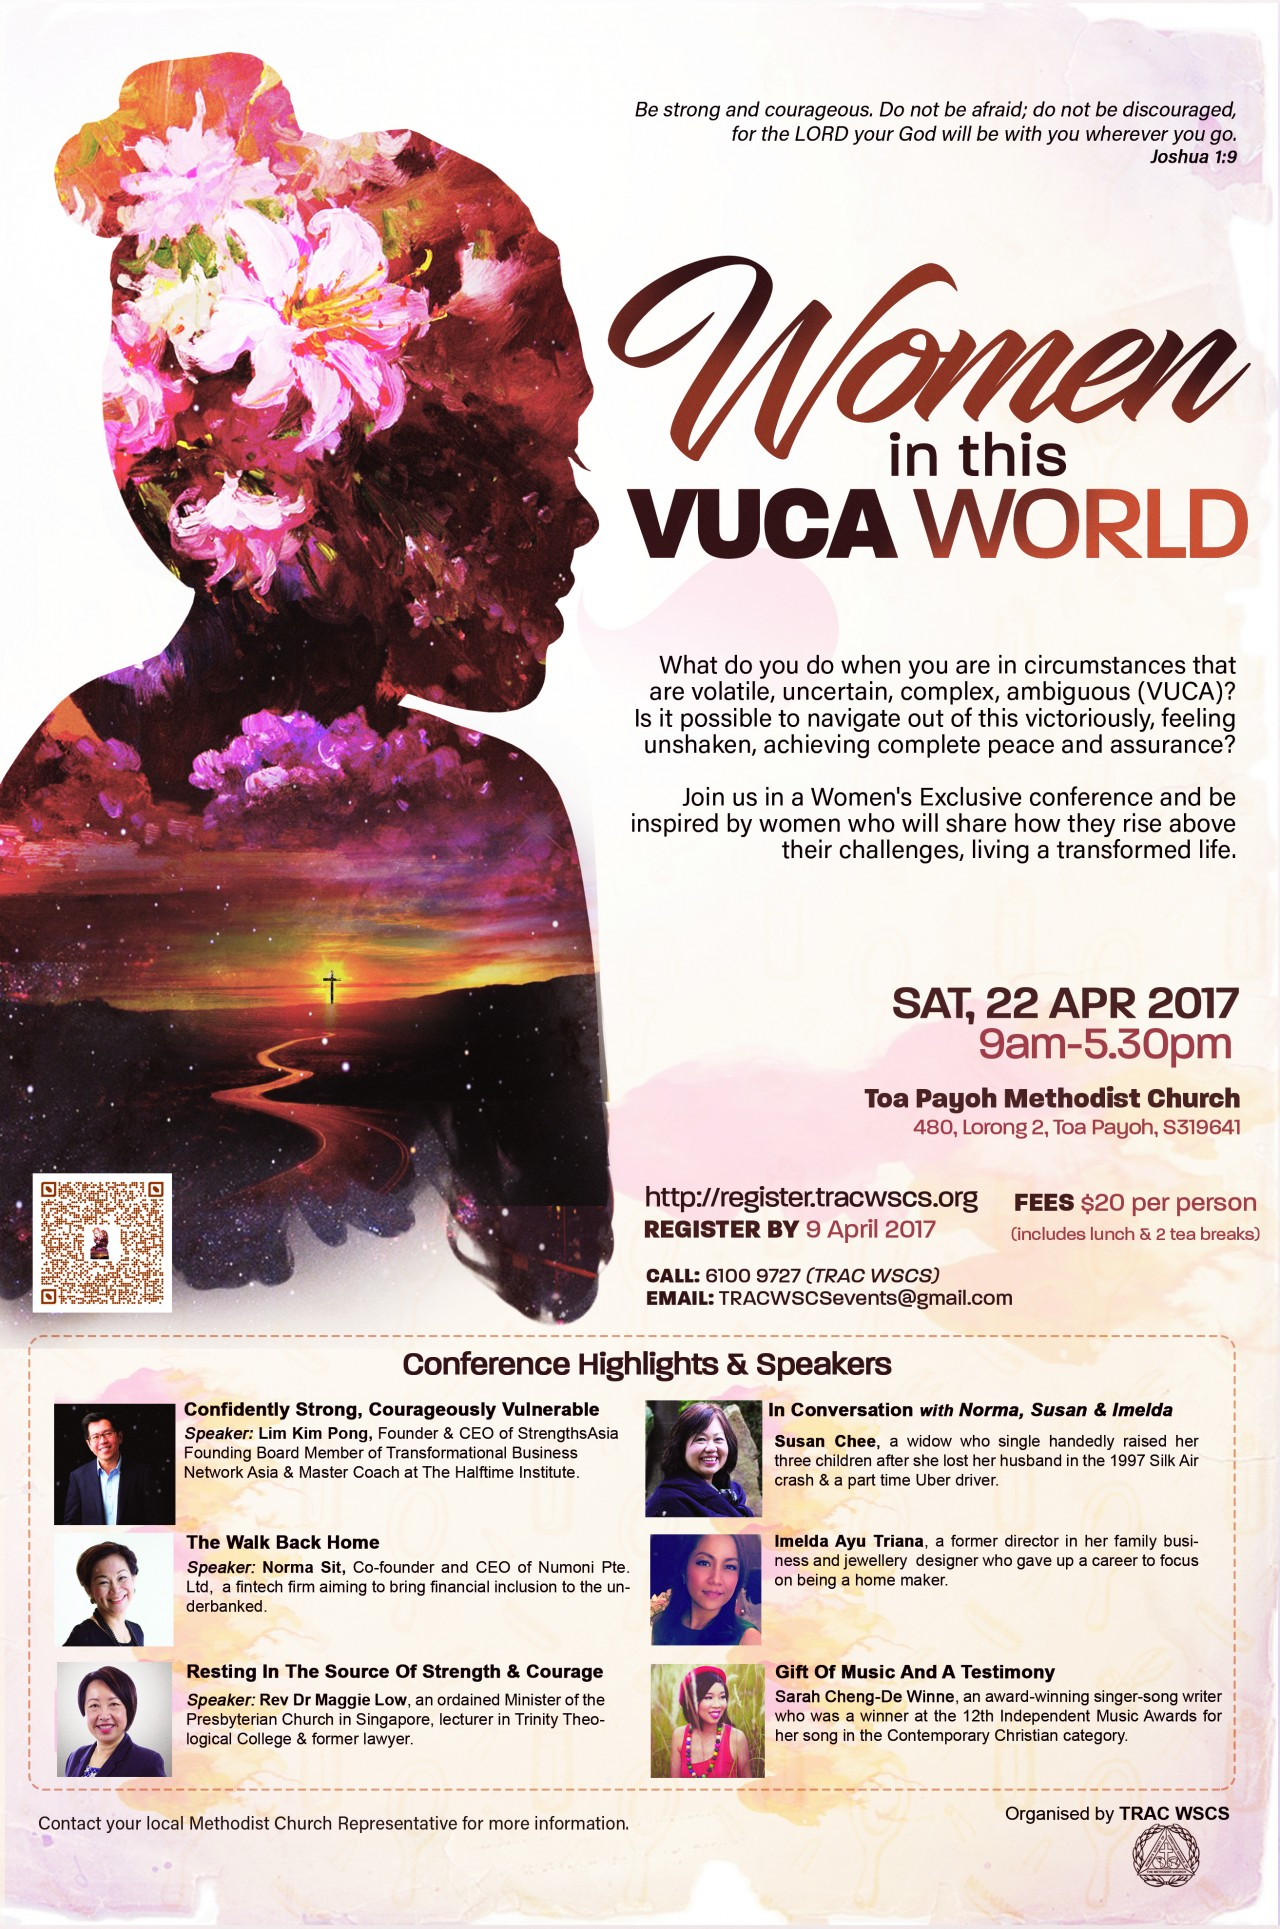 Women in this VUCA World